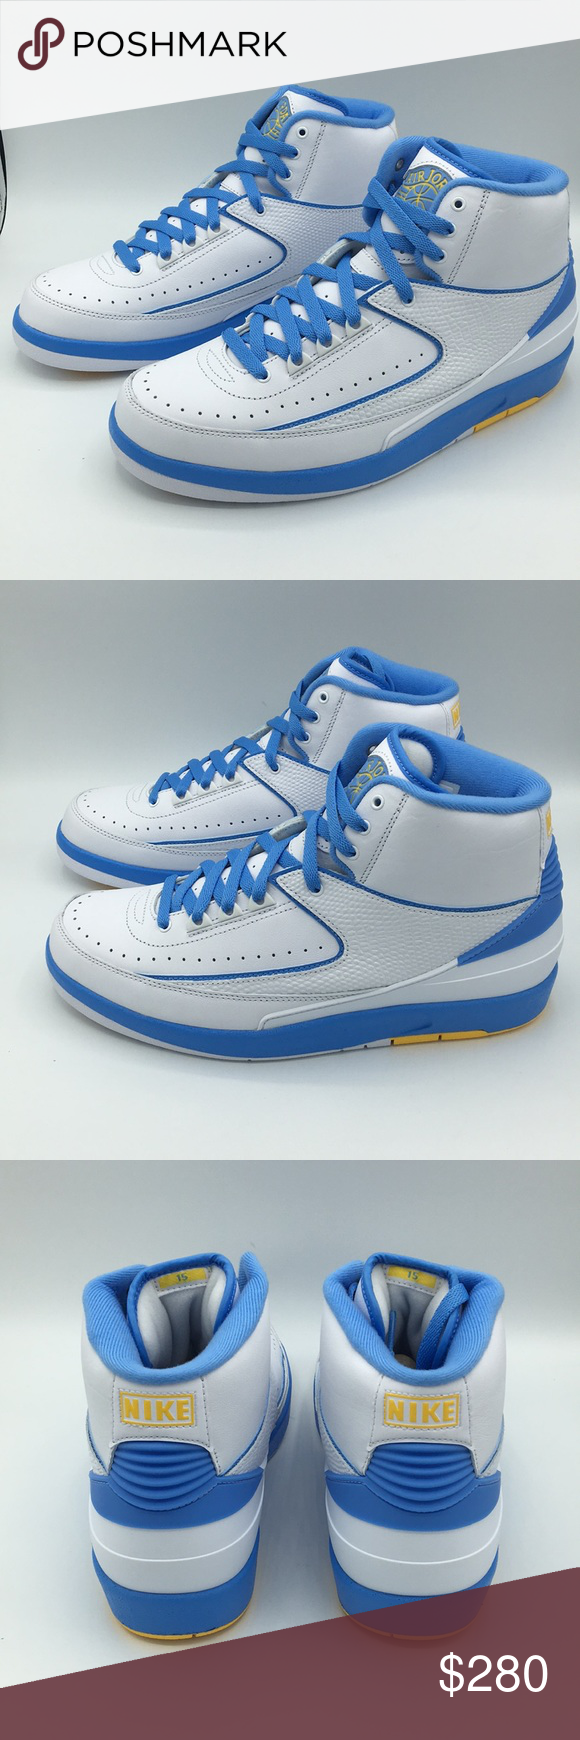 sports shoes 93027 bff12 Air Jordan Retro 2 Univ. Blue Carmelo Anthony Pair of Air ...